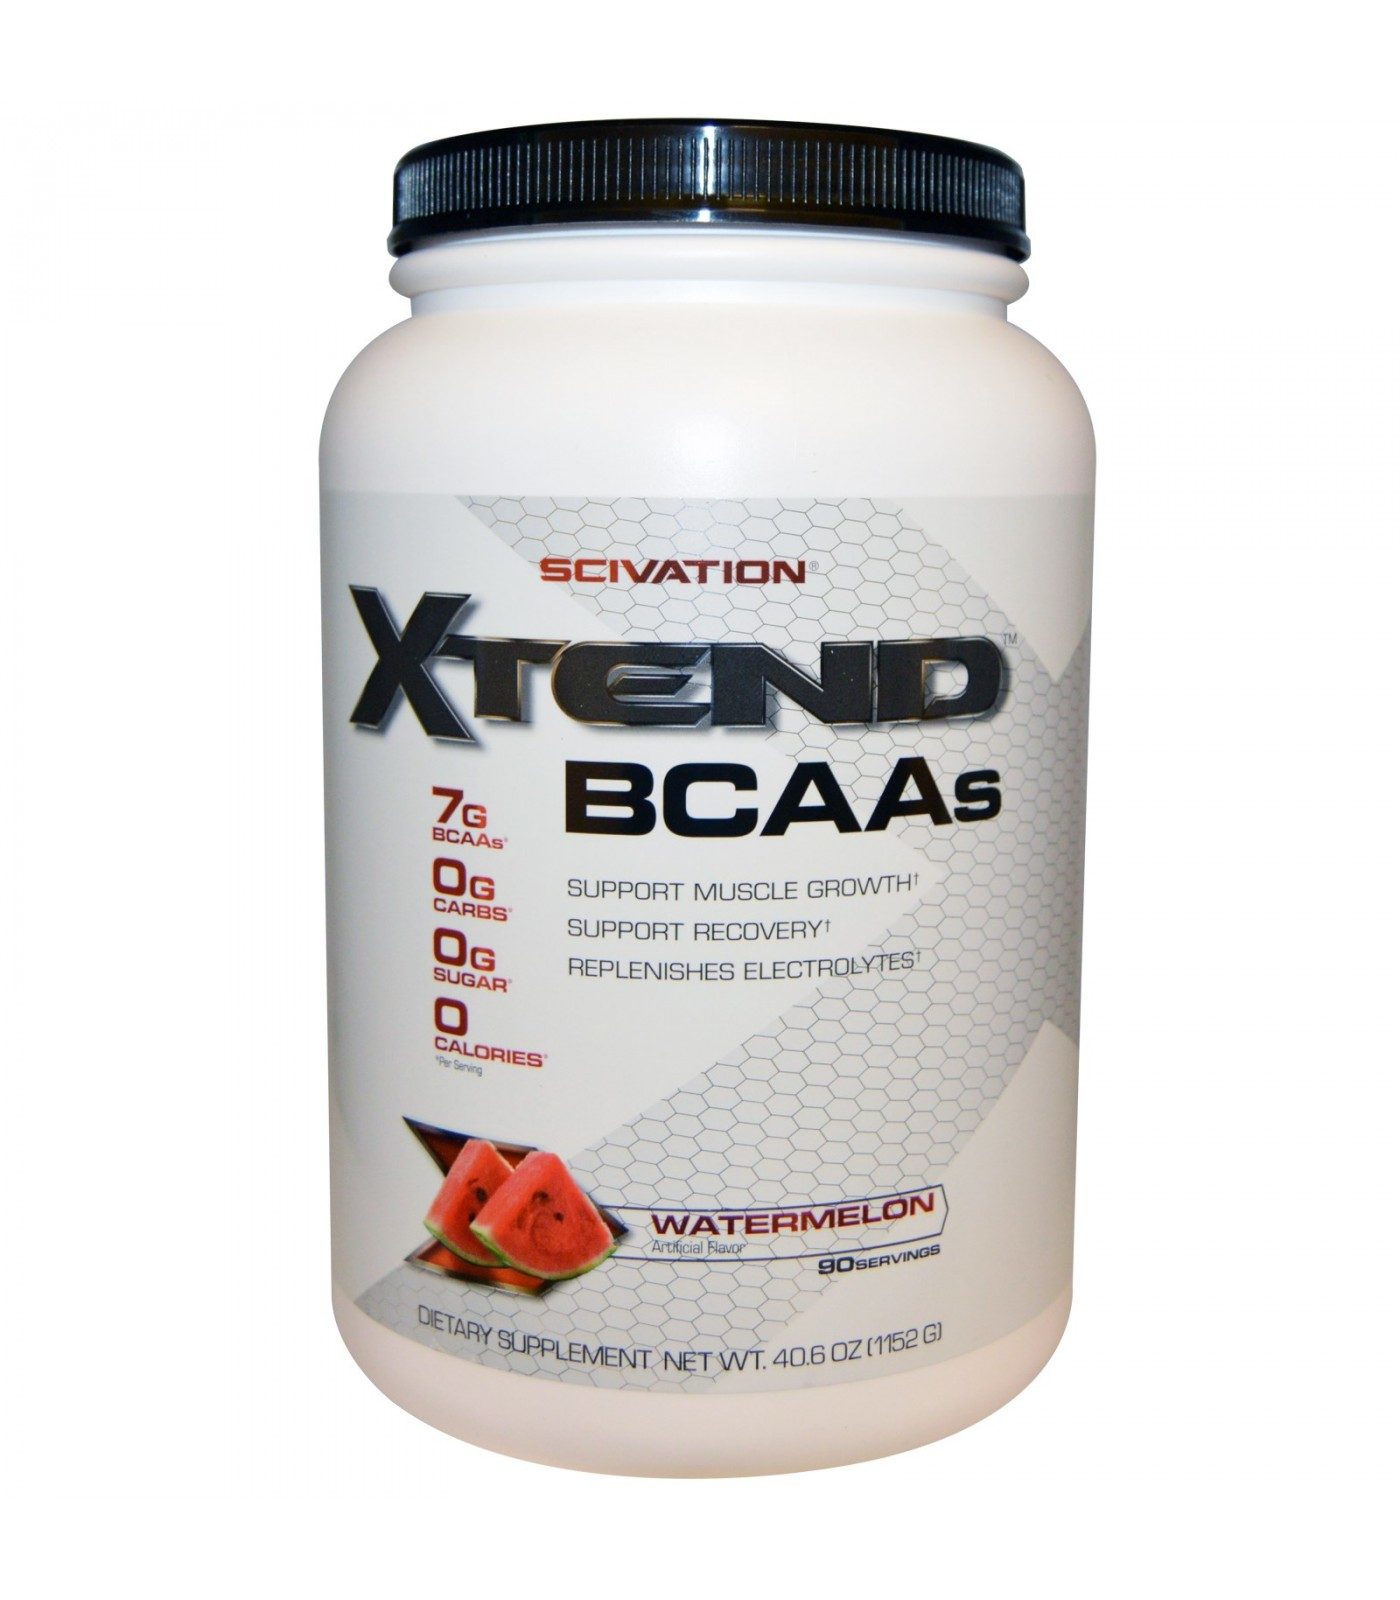 Scivation - XTEND - new formula! / 90 дози​